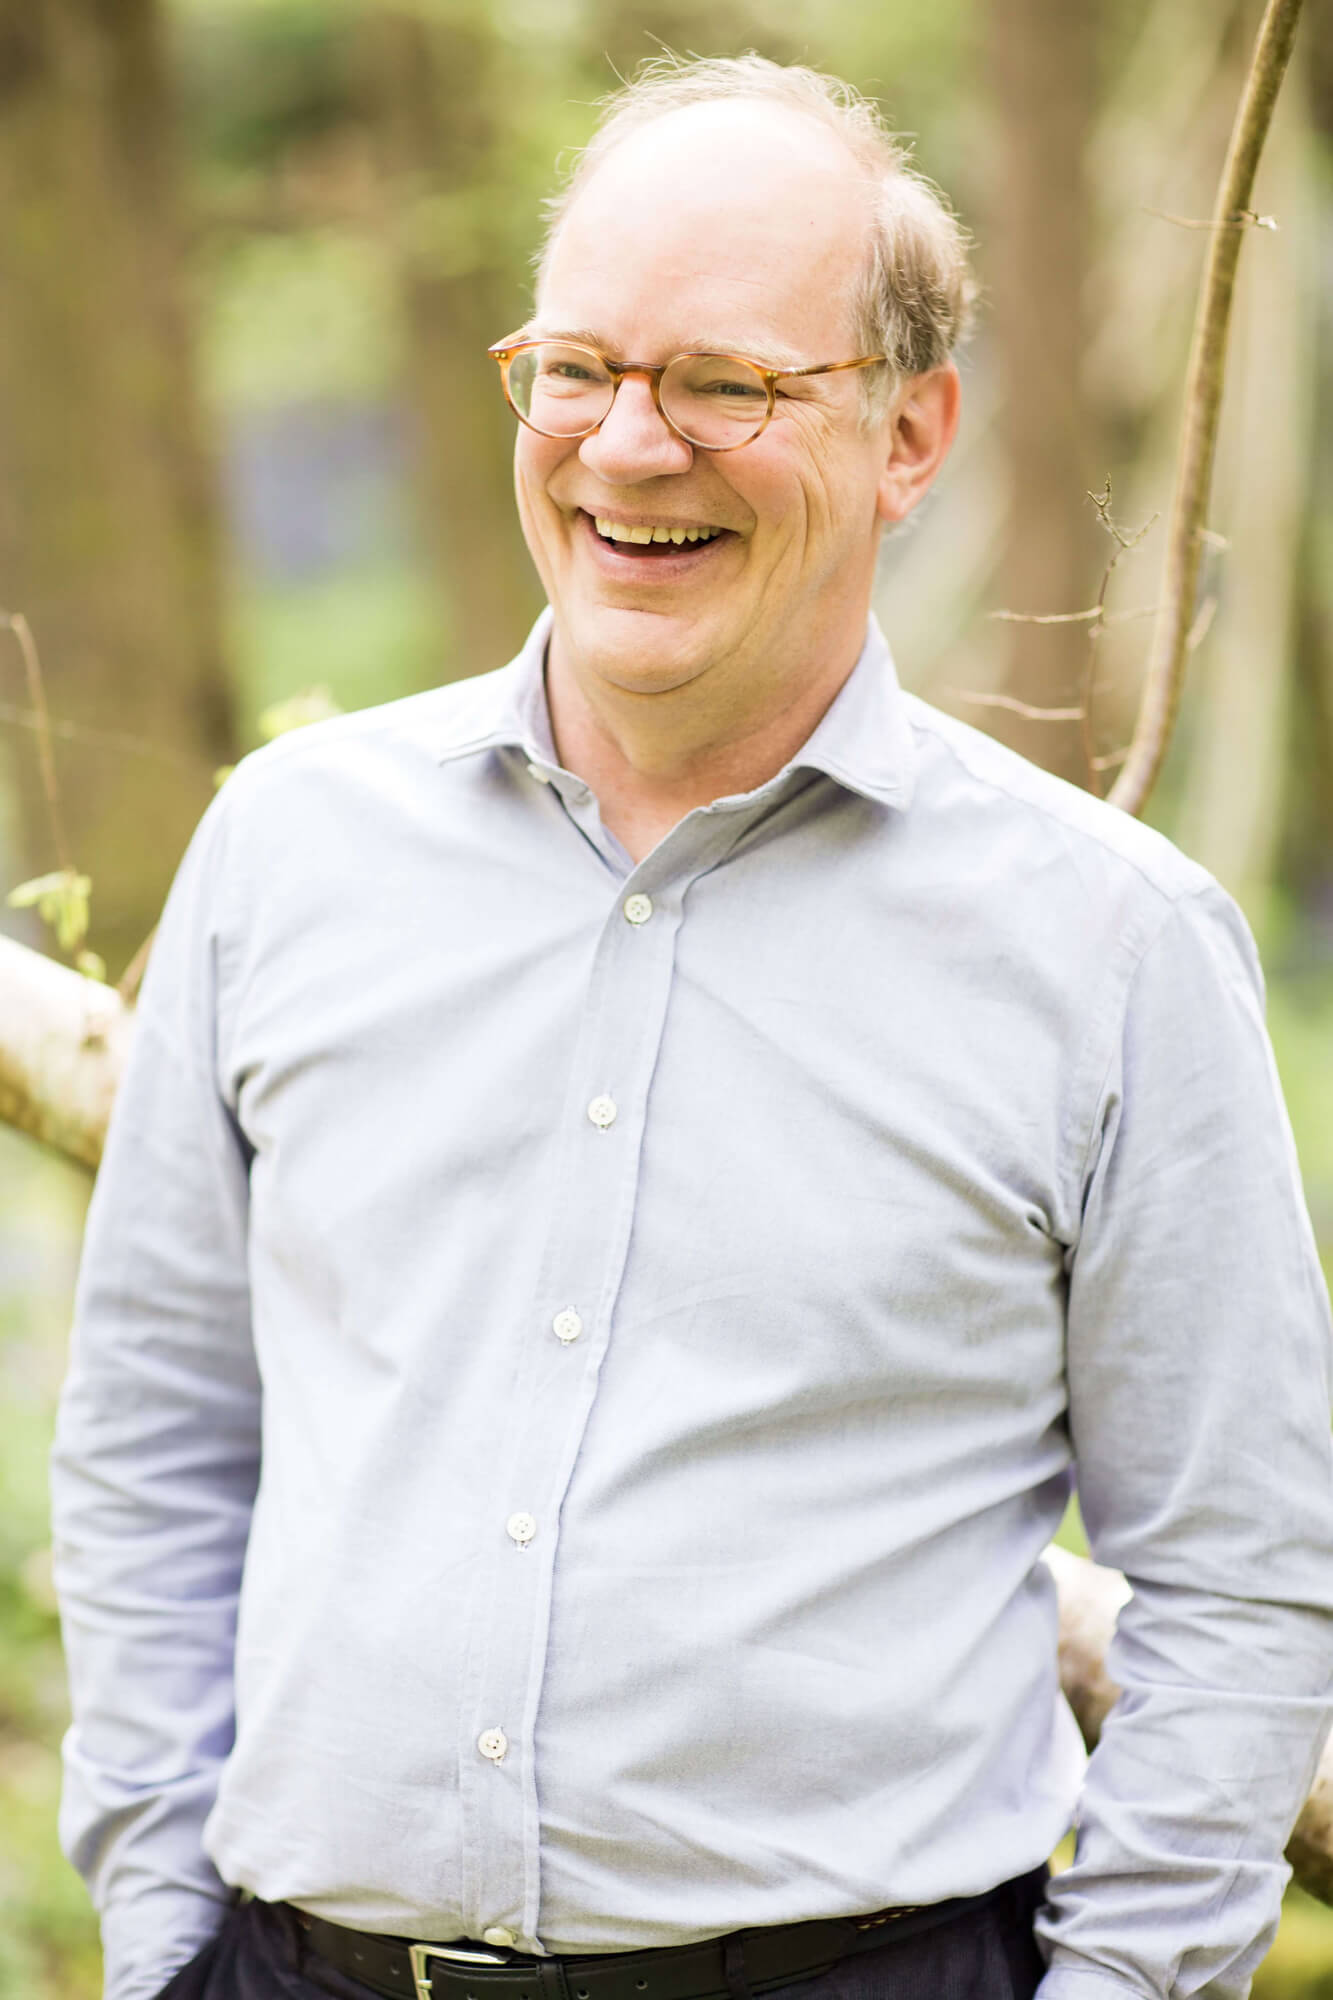 a man with glasses, hands in his pockets, smiling